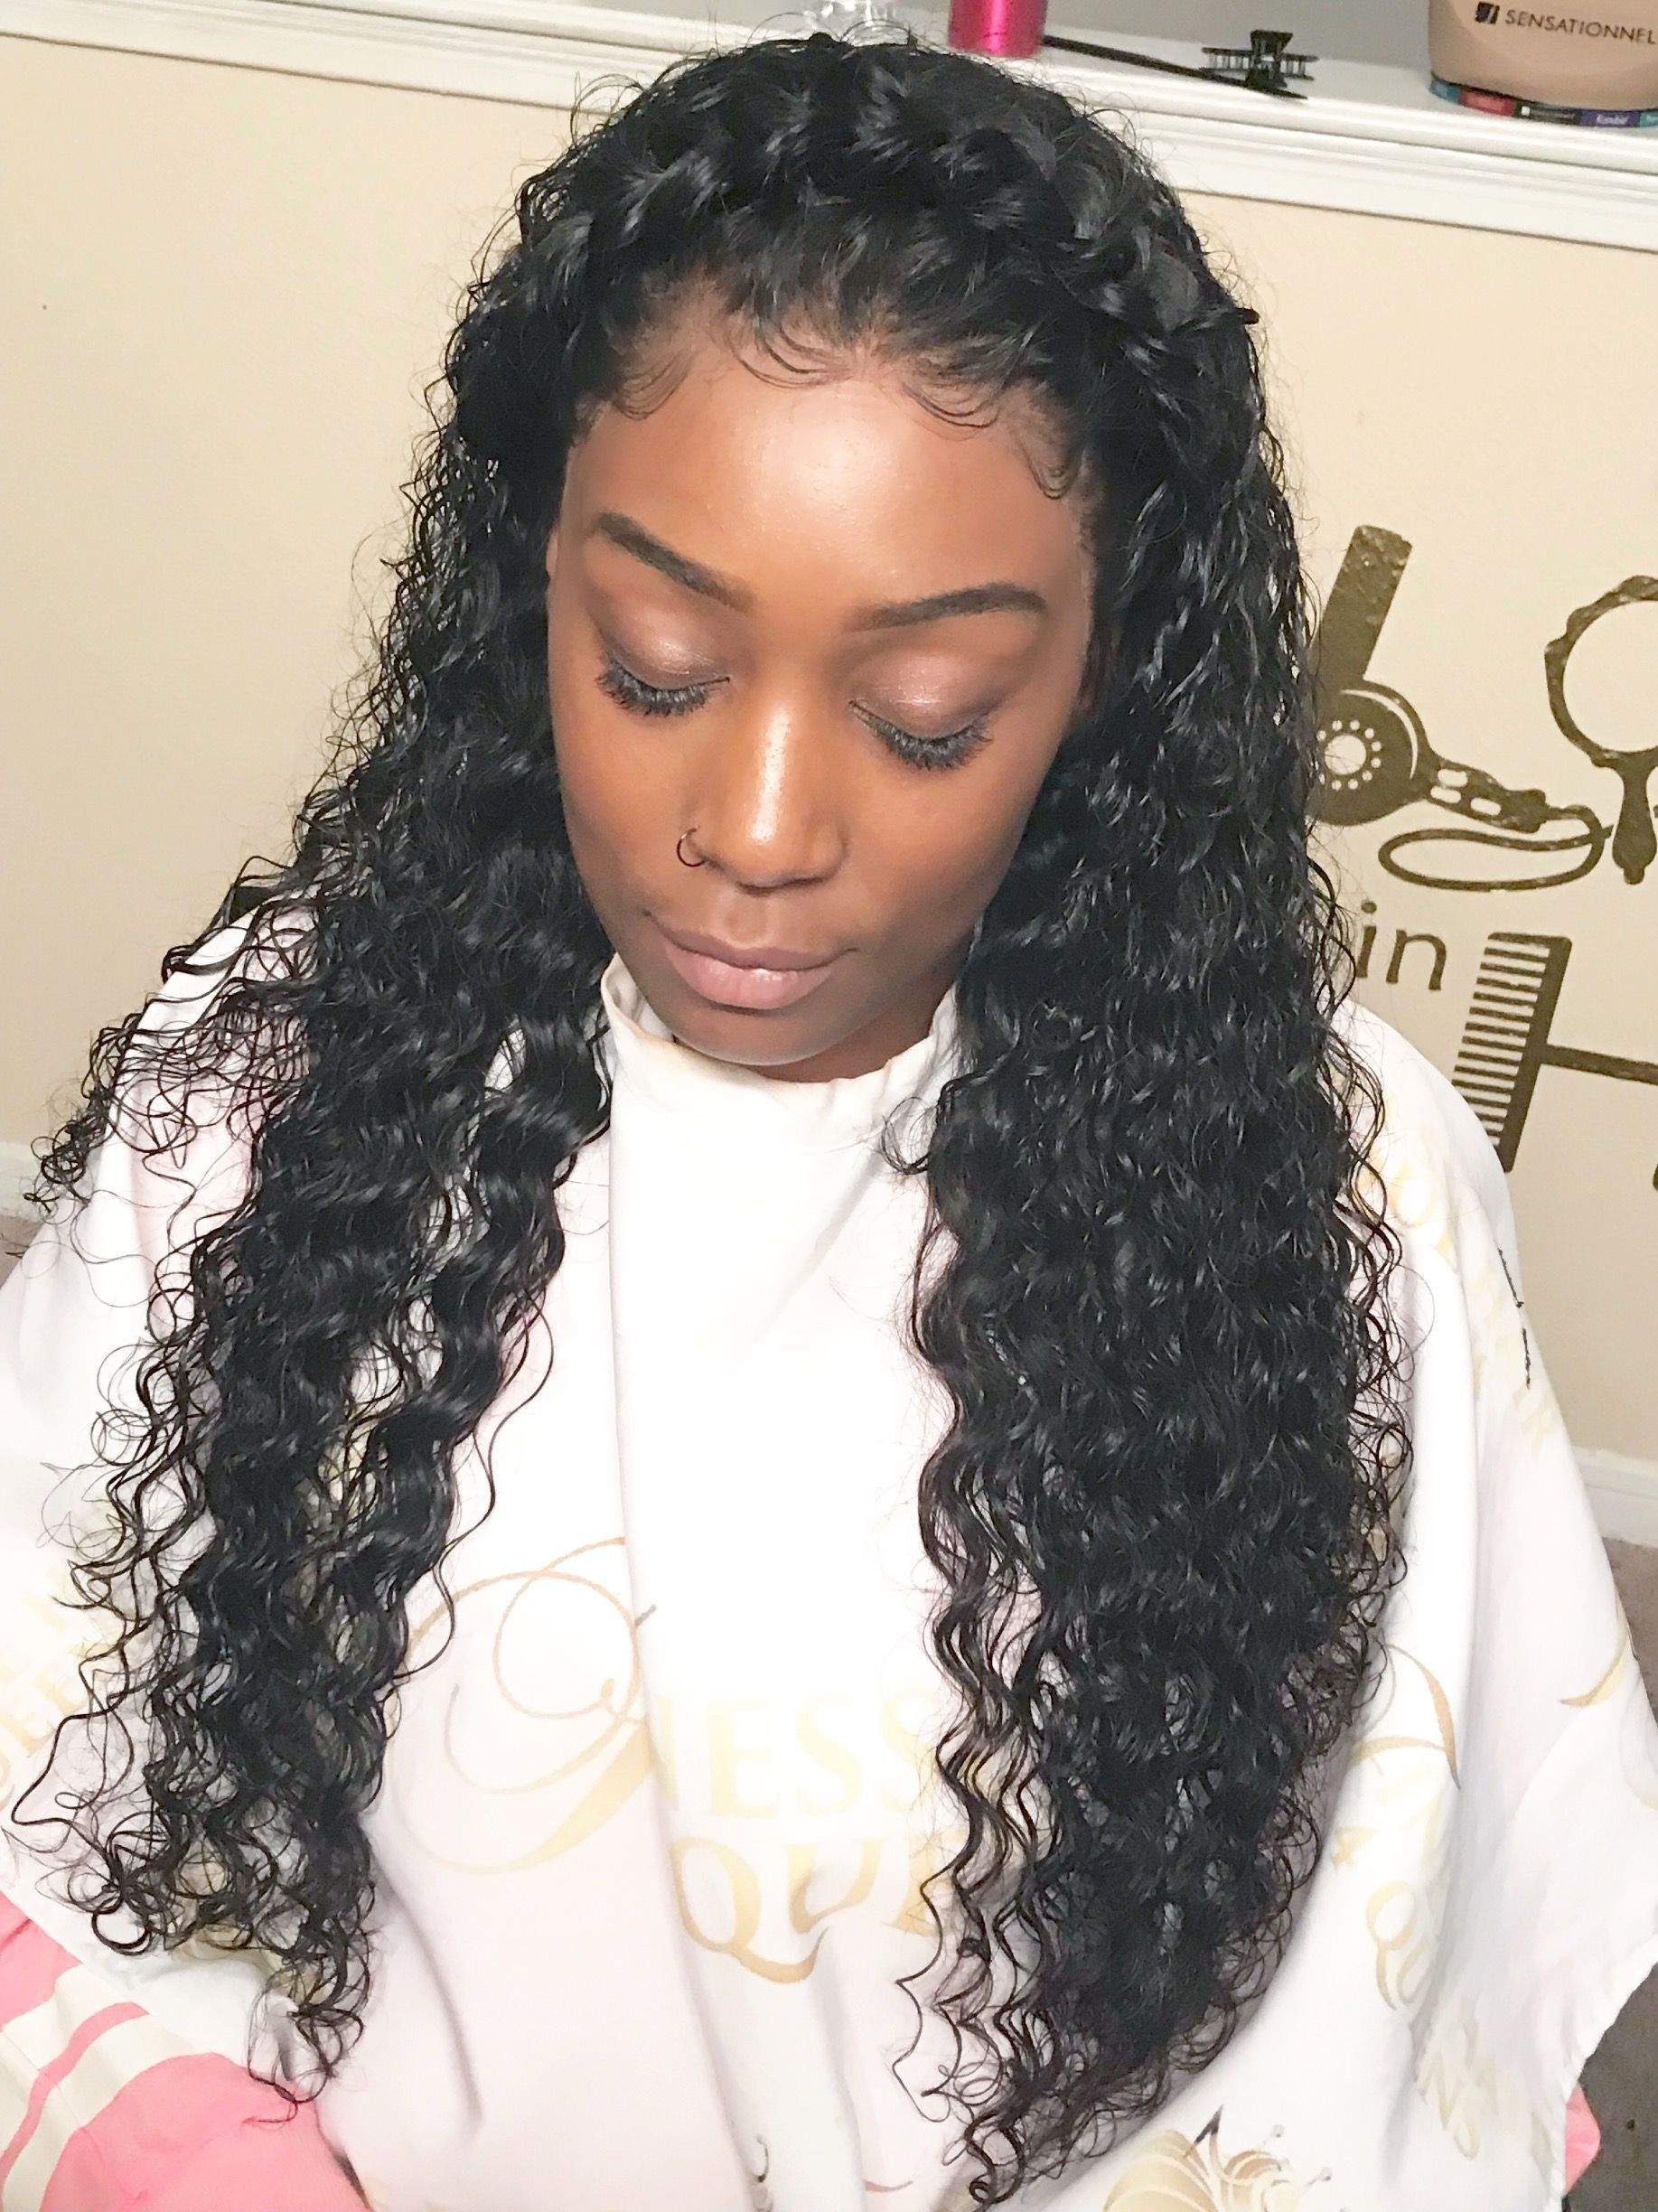 h&f lace front virgin human hair body wave wig | indian body